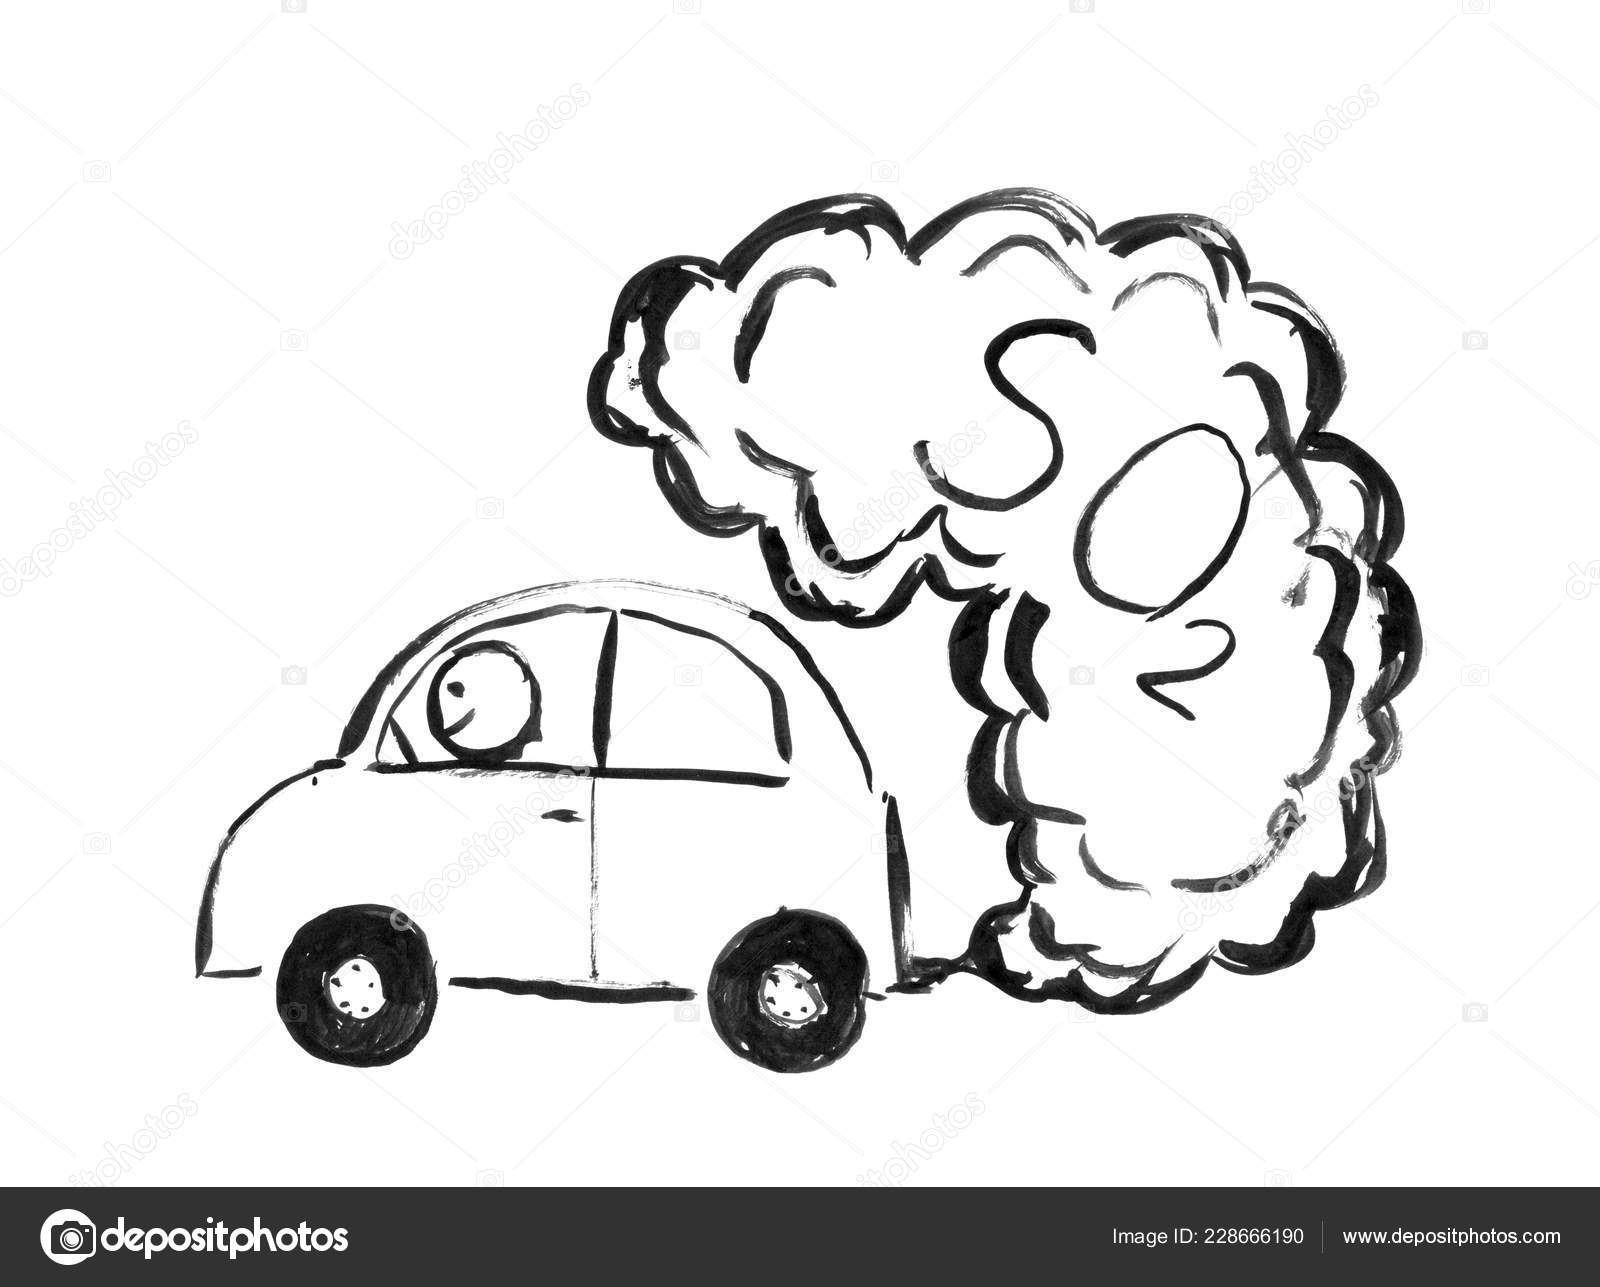 Black Ink Hand Drawing Of Car Producing So2 Air Pollution Stock